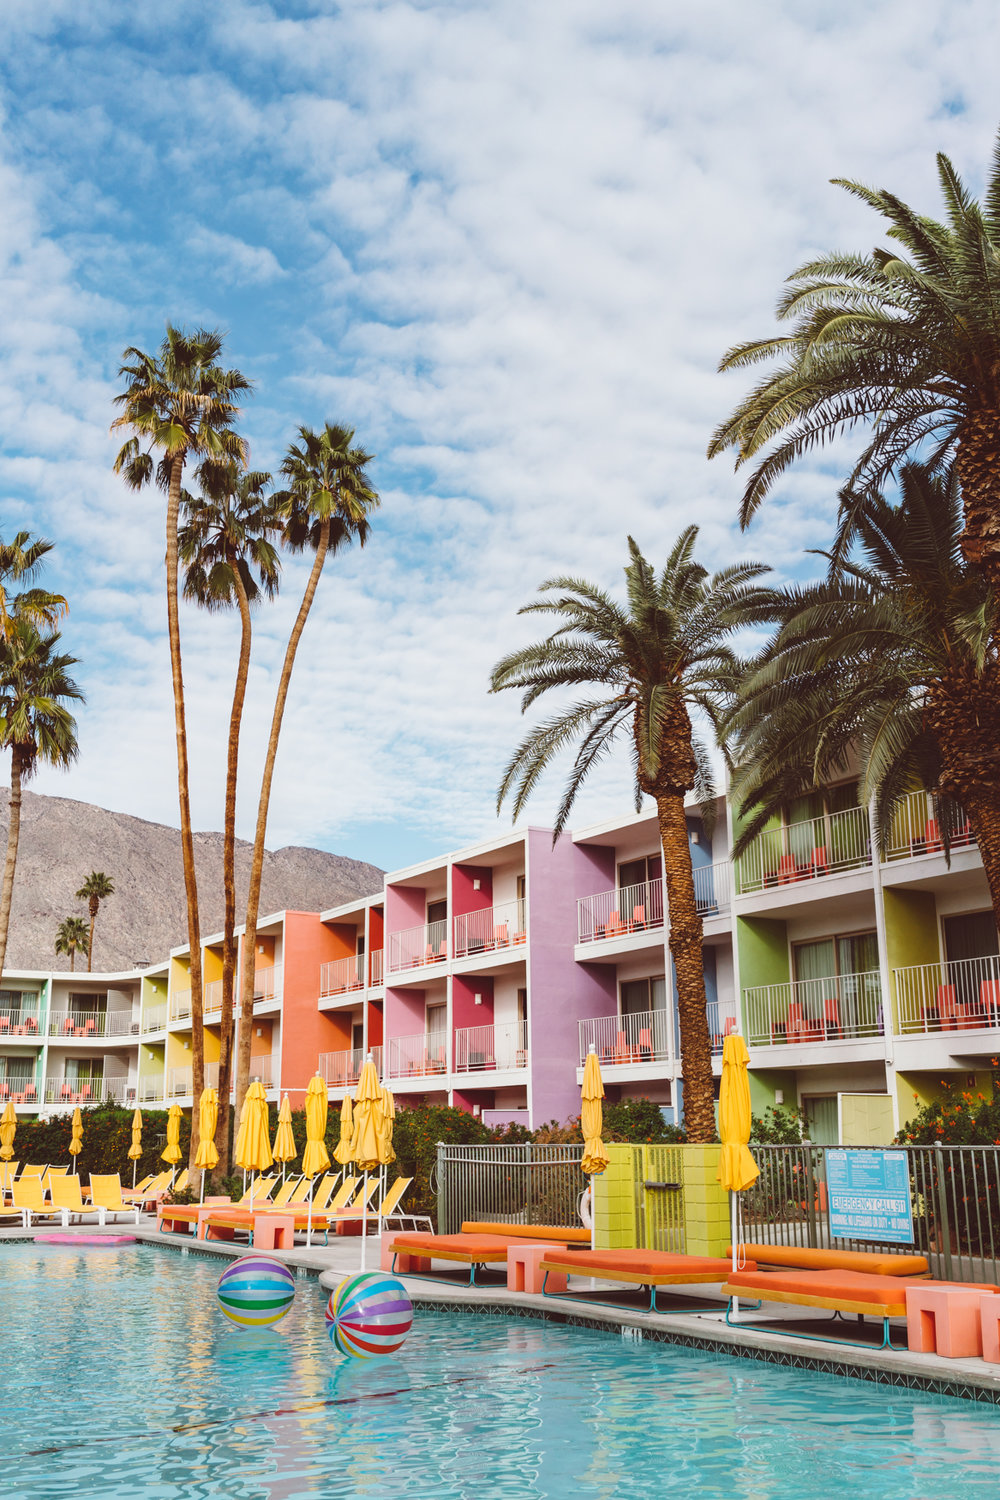 Saguaro Hotel Palm Springs